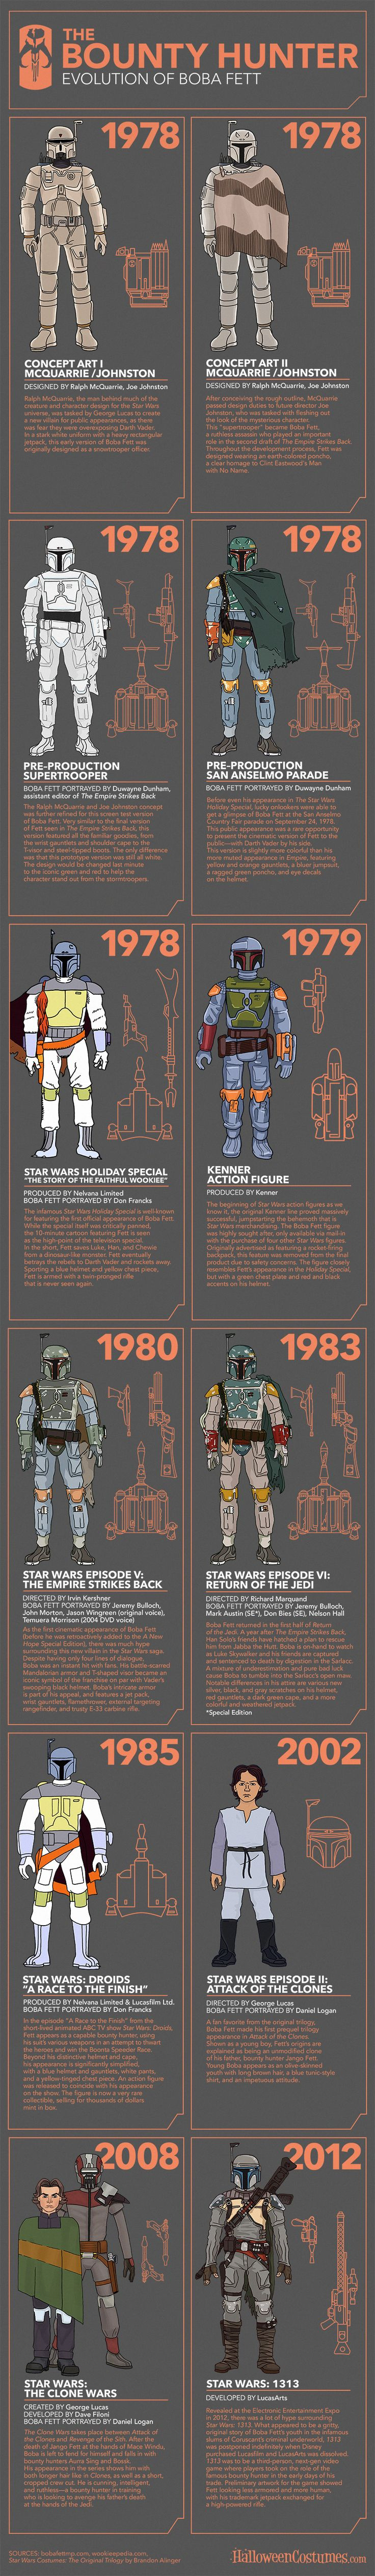 The Bounty Hunter Evolution of Boba Fett #Infographic #StarWars #Entertainment